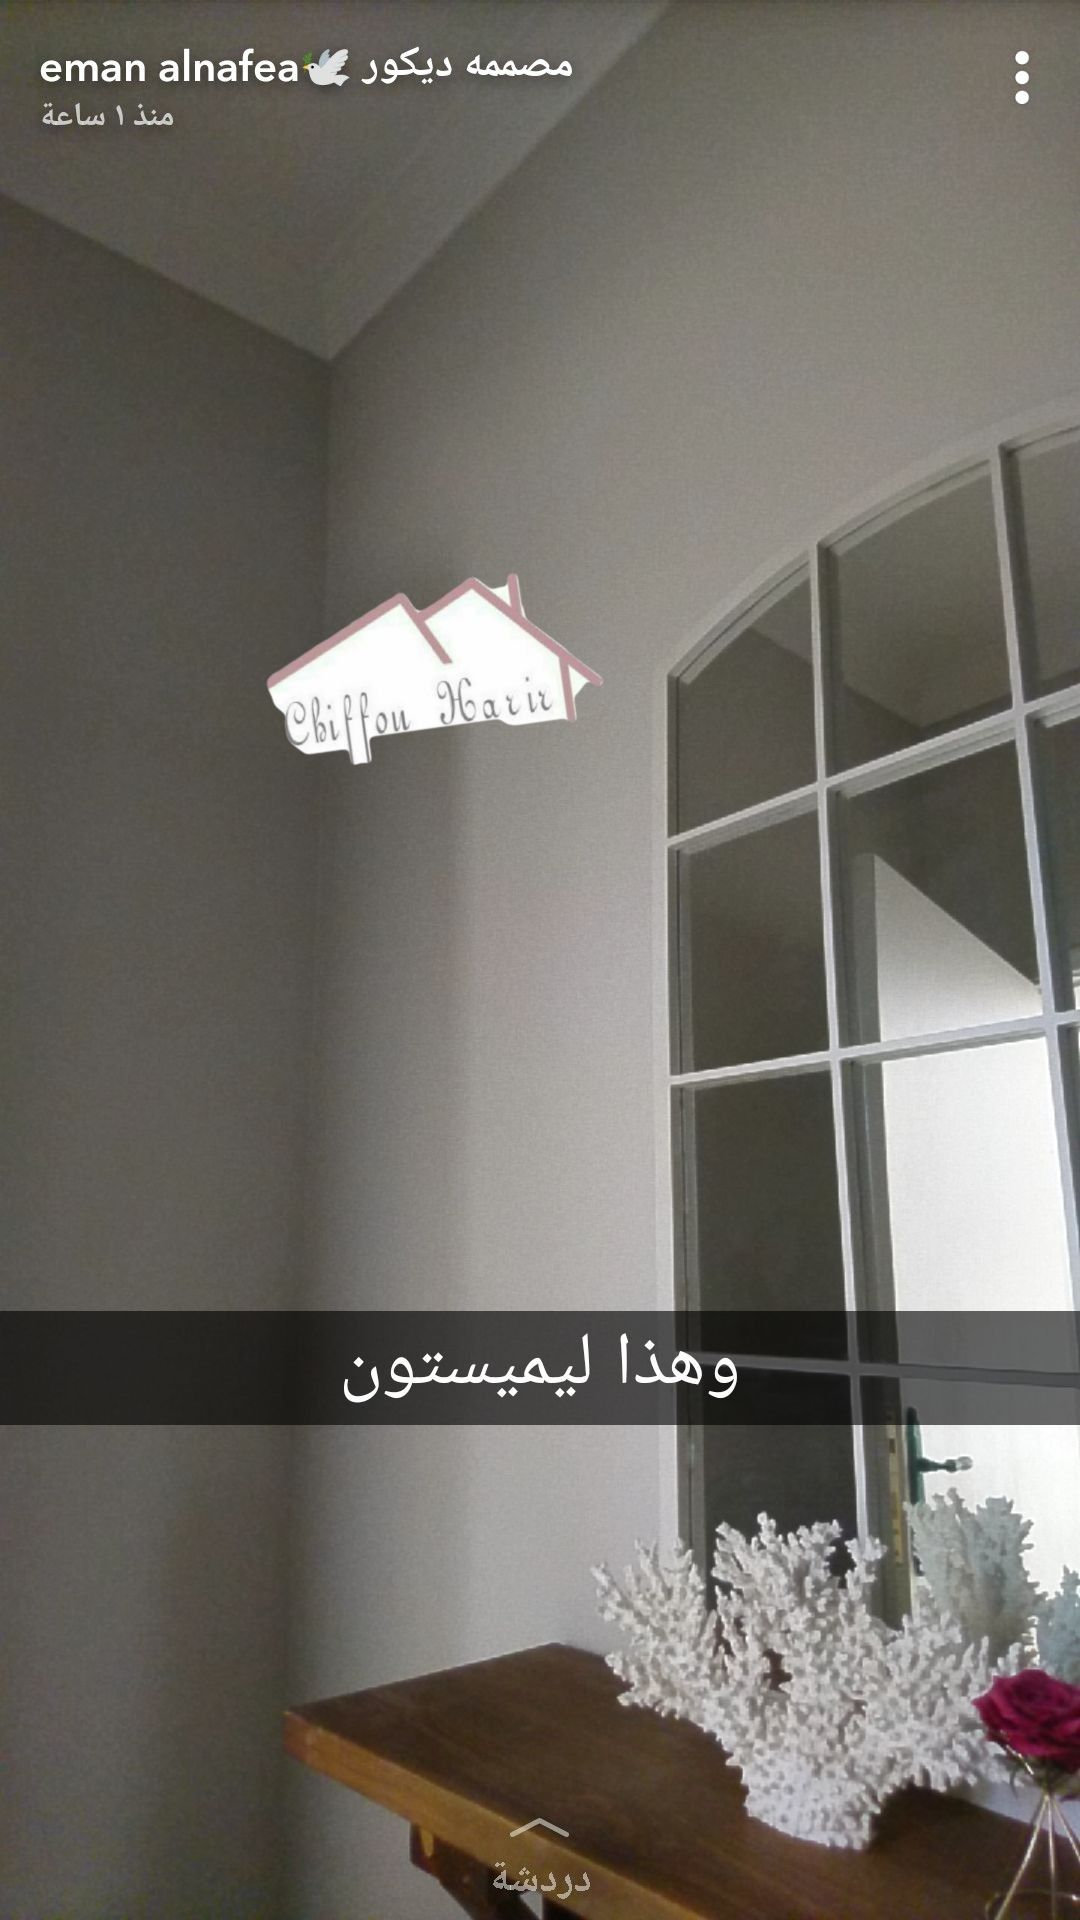 رصاصي ليمستون يصلح لفرفه Home Room Design Grey Bedroom Decor Living Room Design Decor